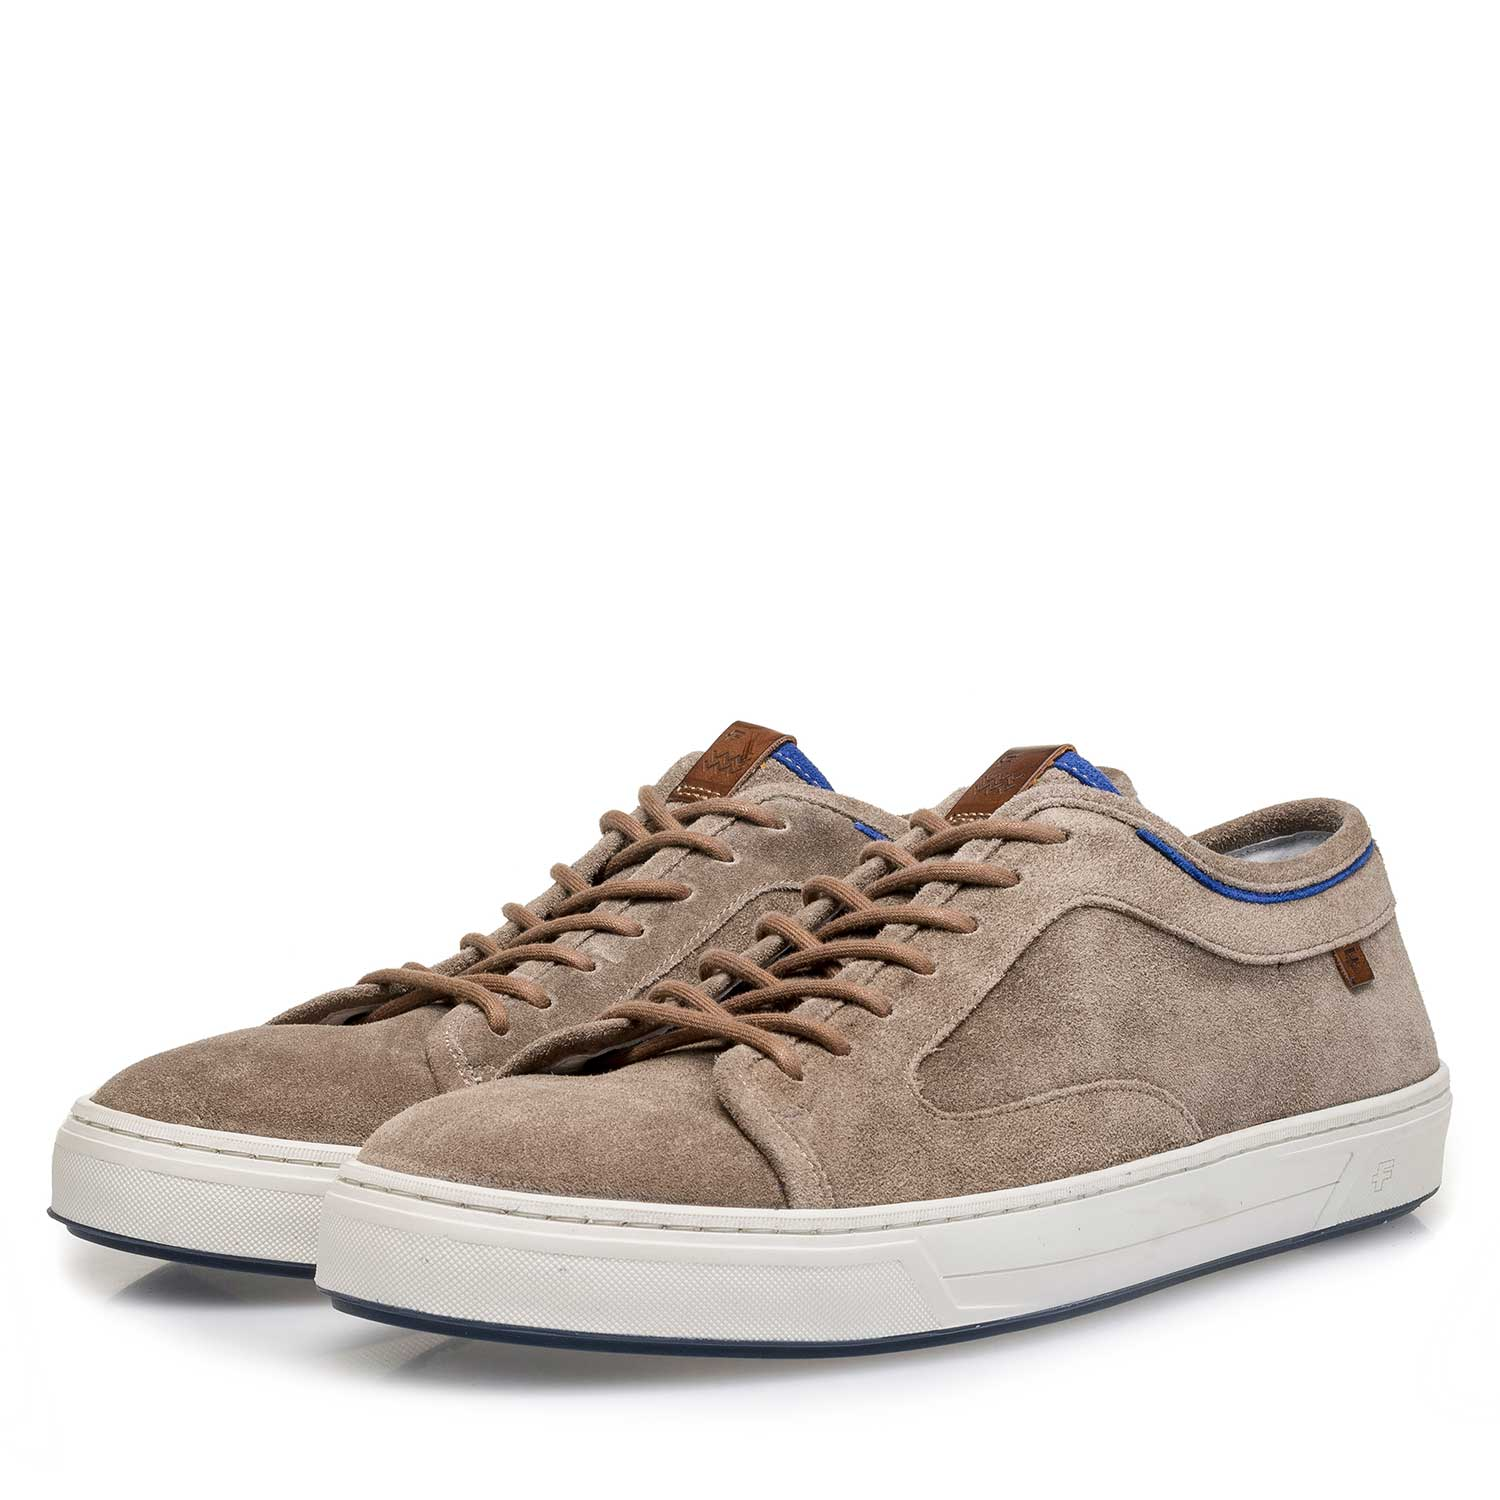 13466/01 - Taupe-coloured washed suede leather sneaker